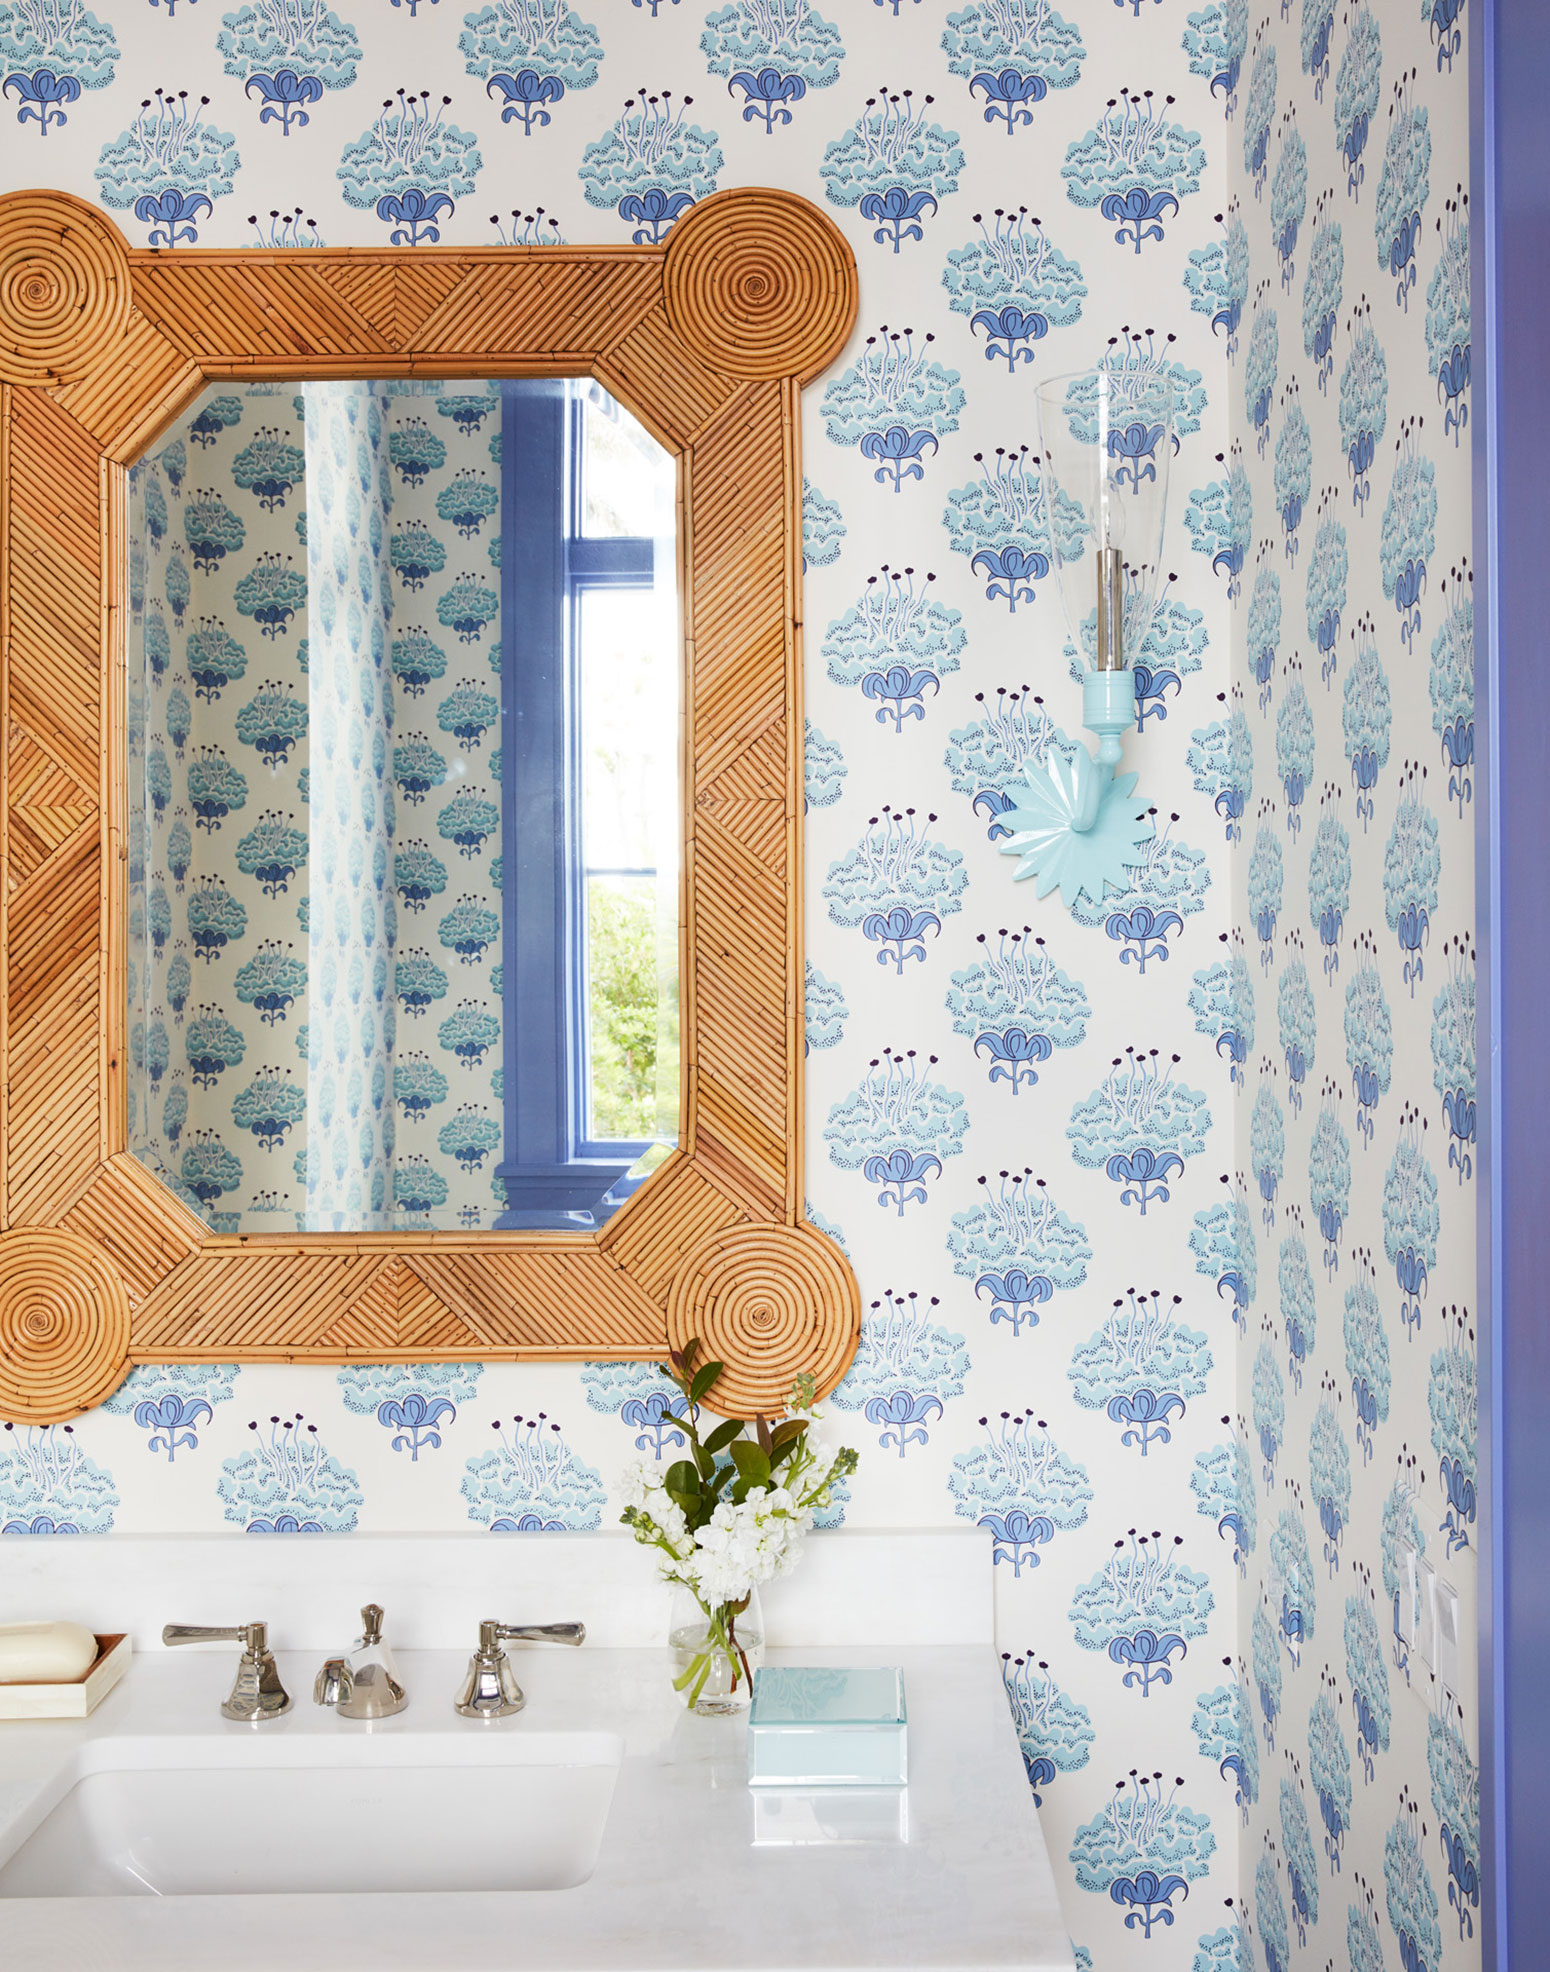 A blue tile backsplash and mirrored cupboards